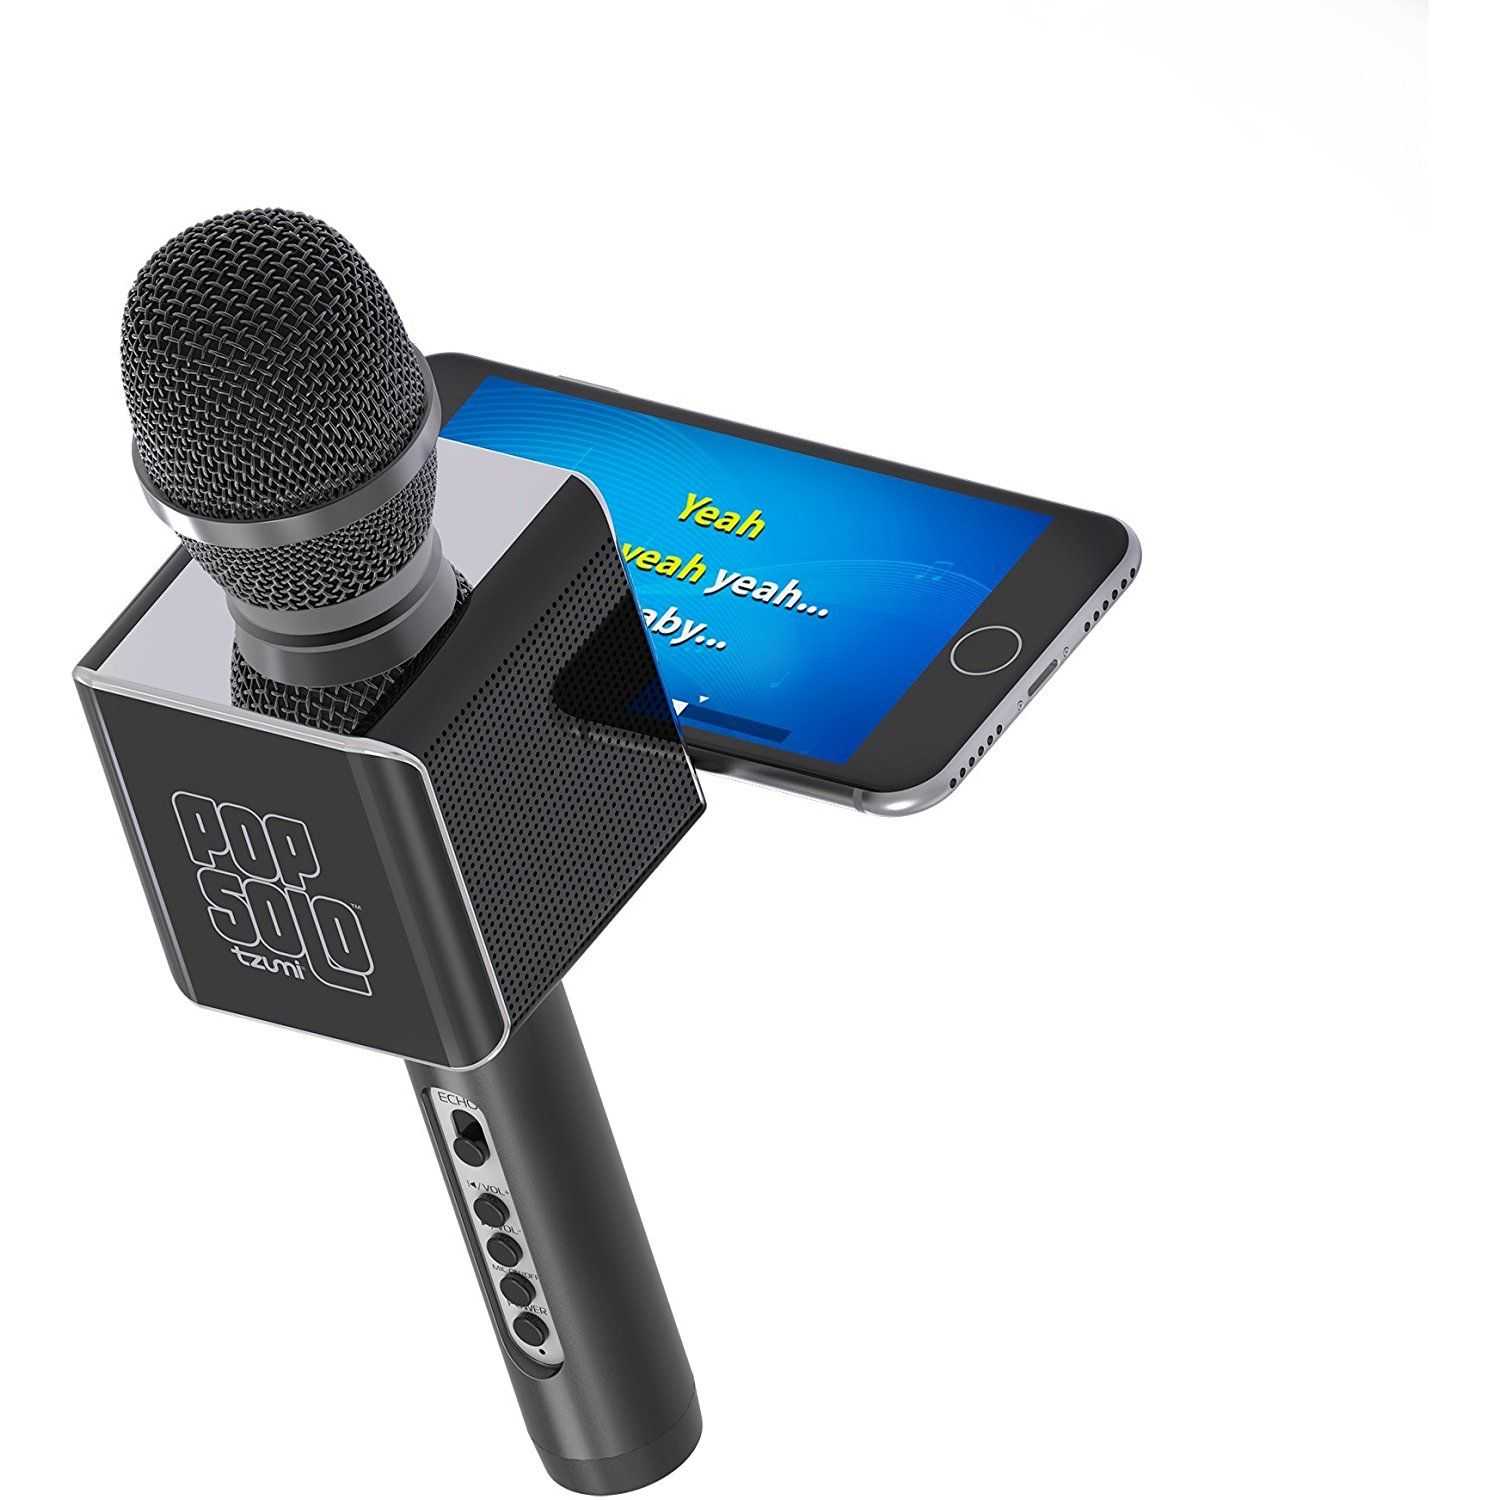 PopSolo Bluetooth Karaoke Microphone and Speaker With